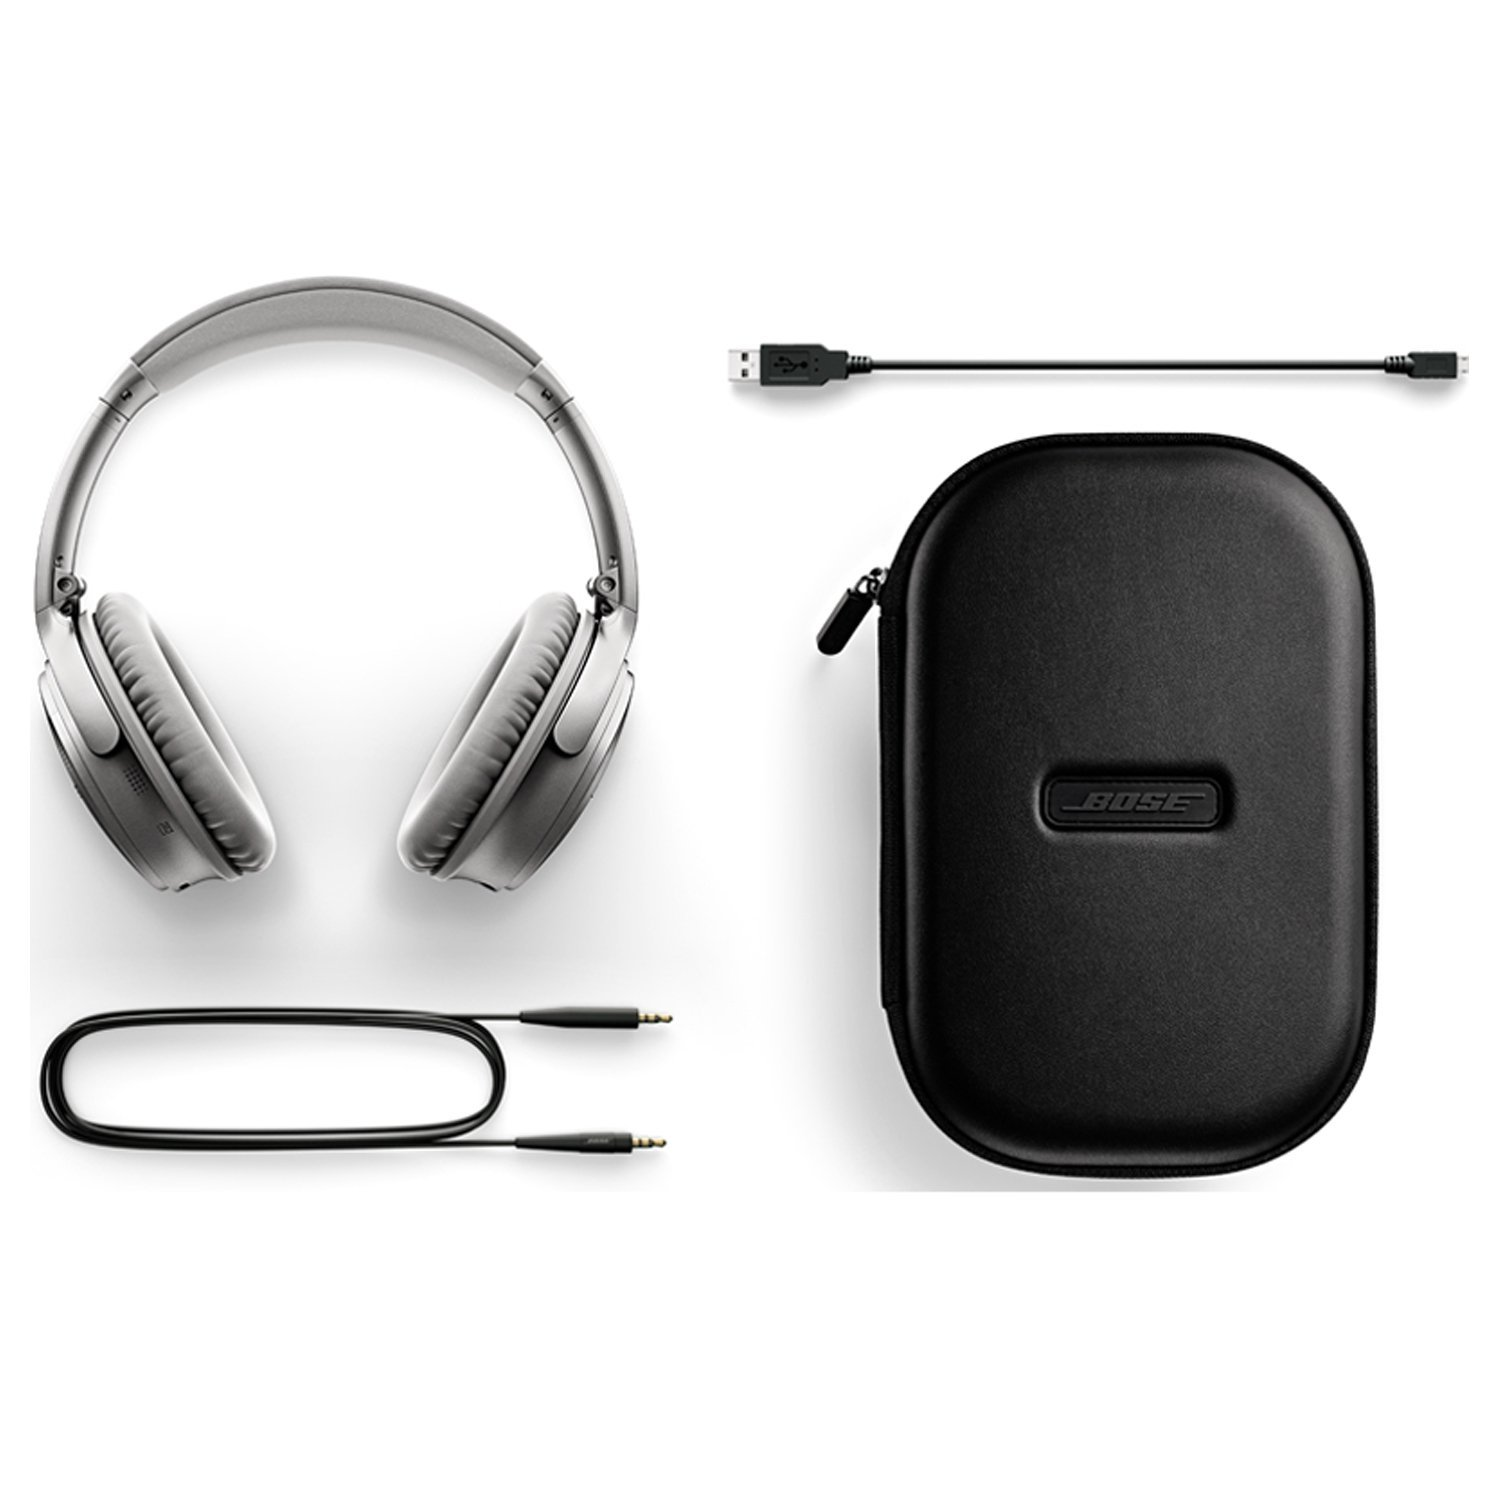 Bose QC35 with headphone cable, charging cable and travel case.